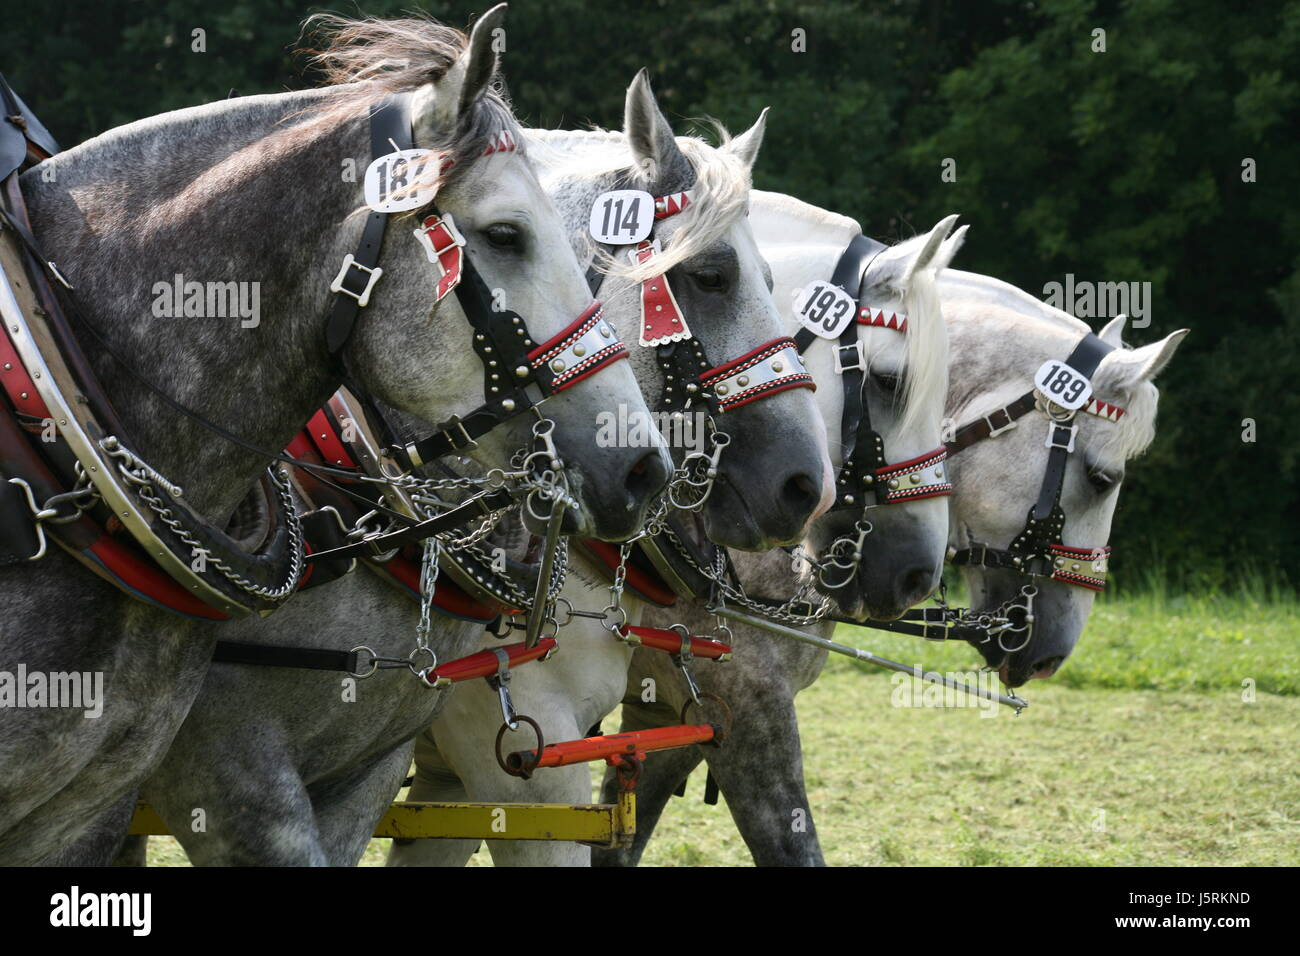 horse animal strong agriculture farming four horses harness coach farm animal - Stock Image